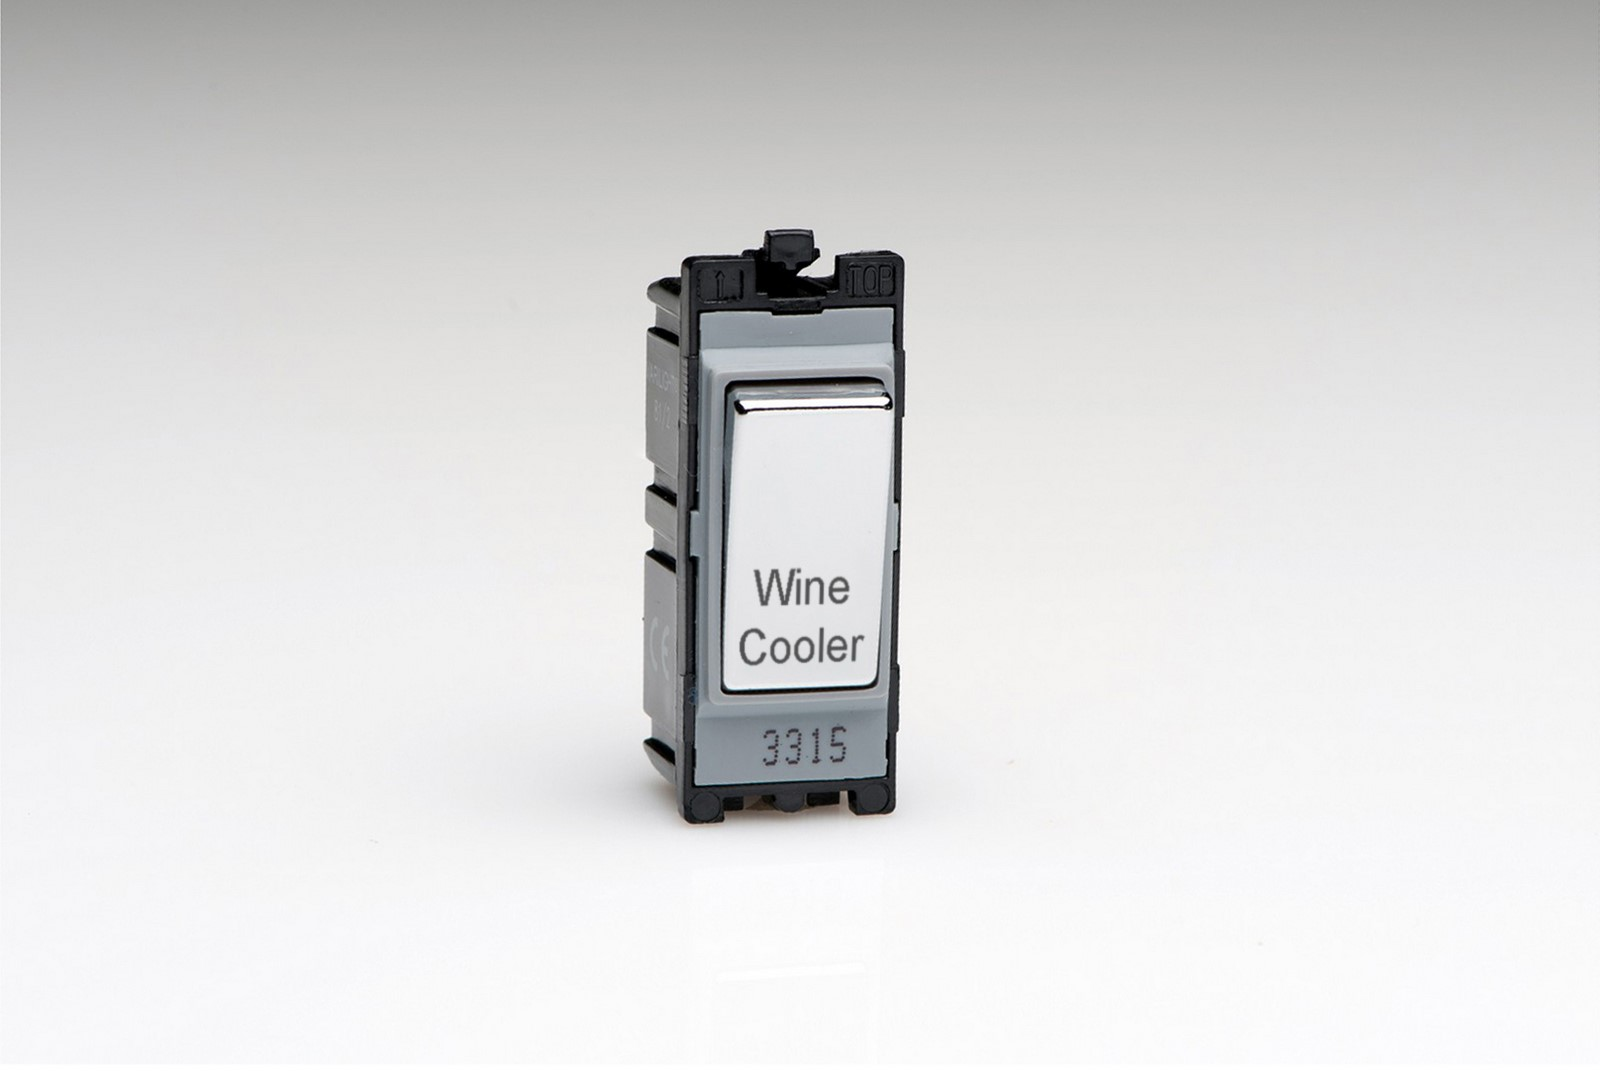 G201DC.WC 'Wine Cooler' Varilight 1 Way 20 Amp Power Grid Double Pole Switch Polished Chrome Engraved with 'Wine Cooler'